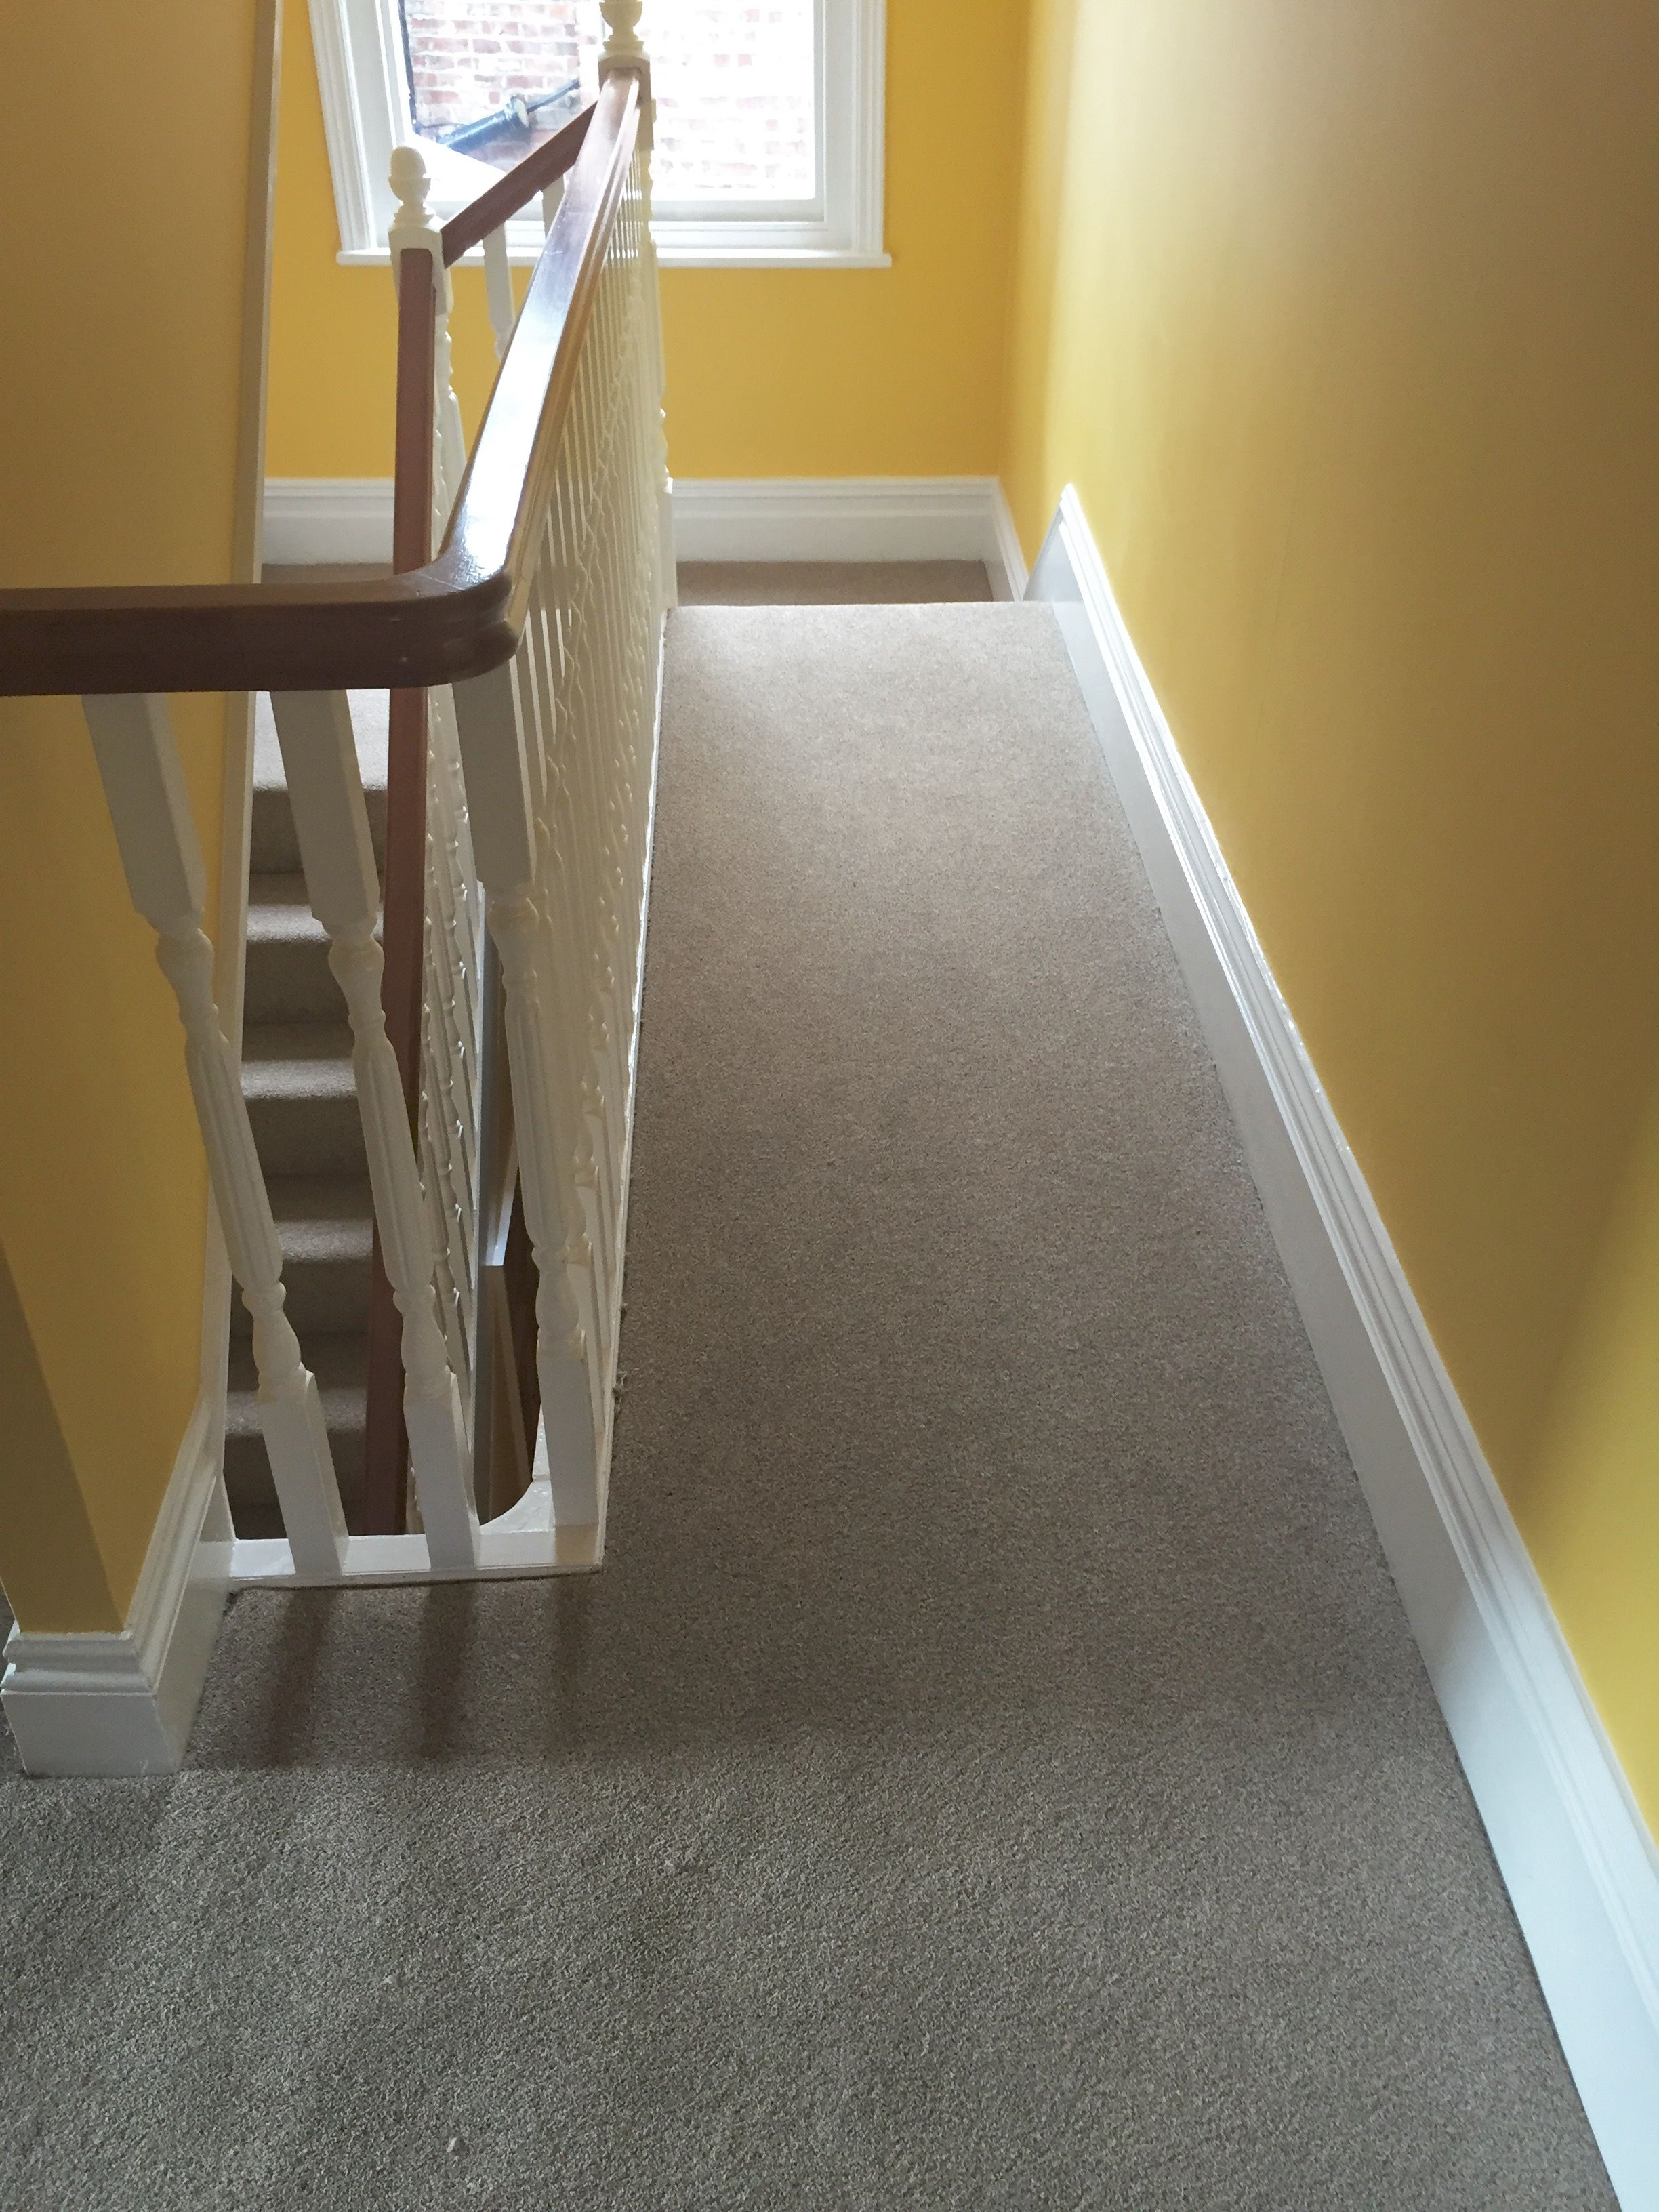 Landing Carpet Fitted Recently In Stockport Home Carpet Stairs Landing Carpet Carpet Fitting